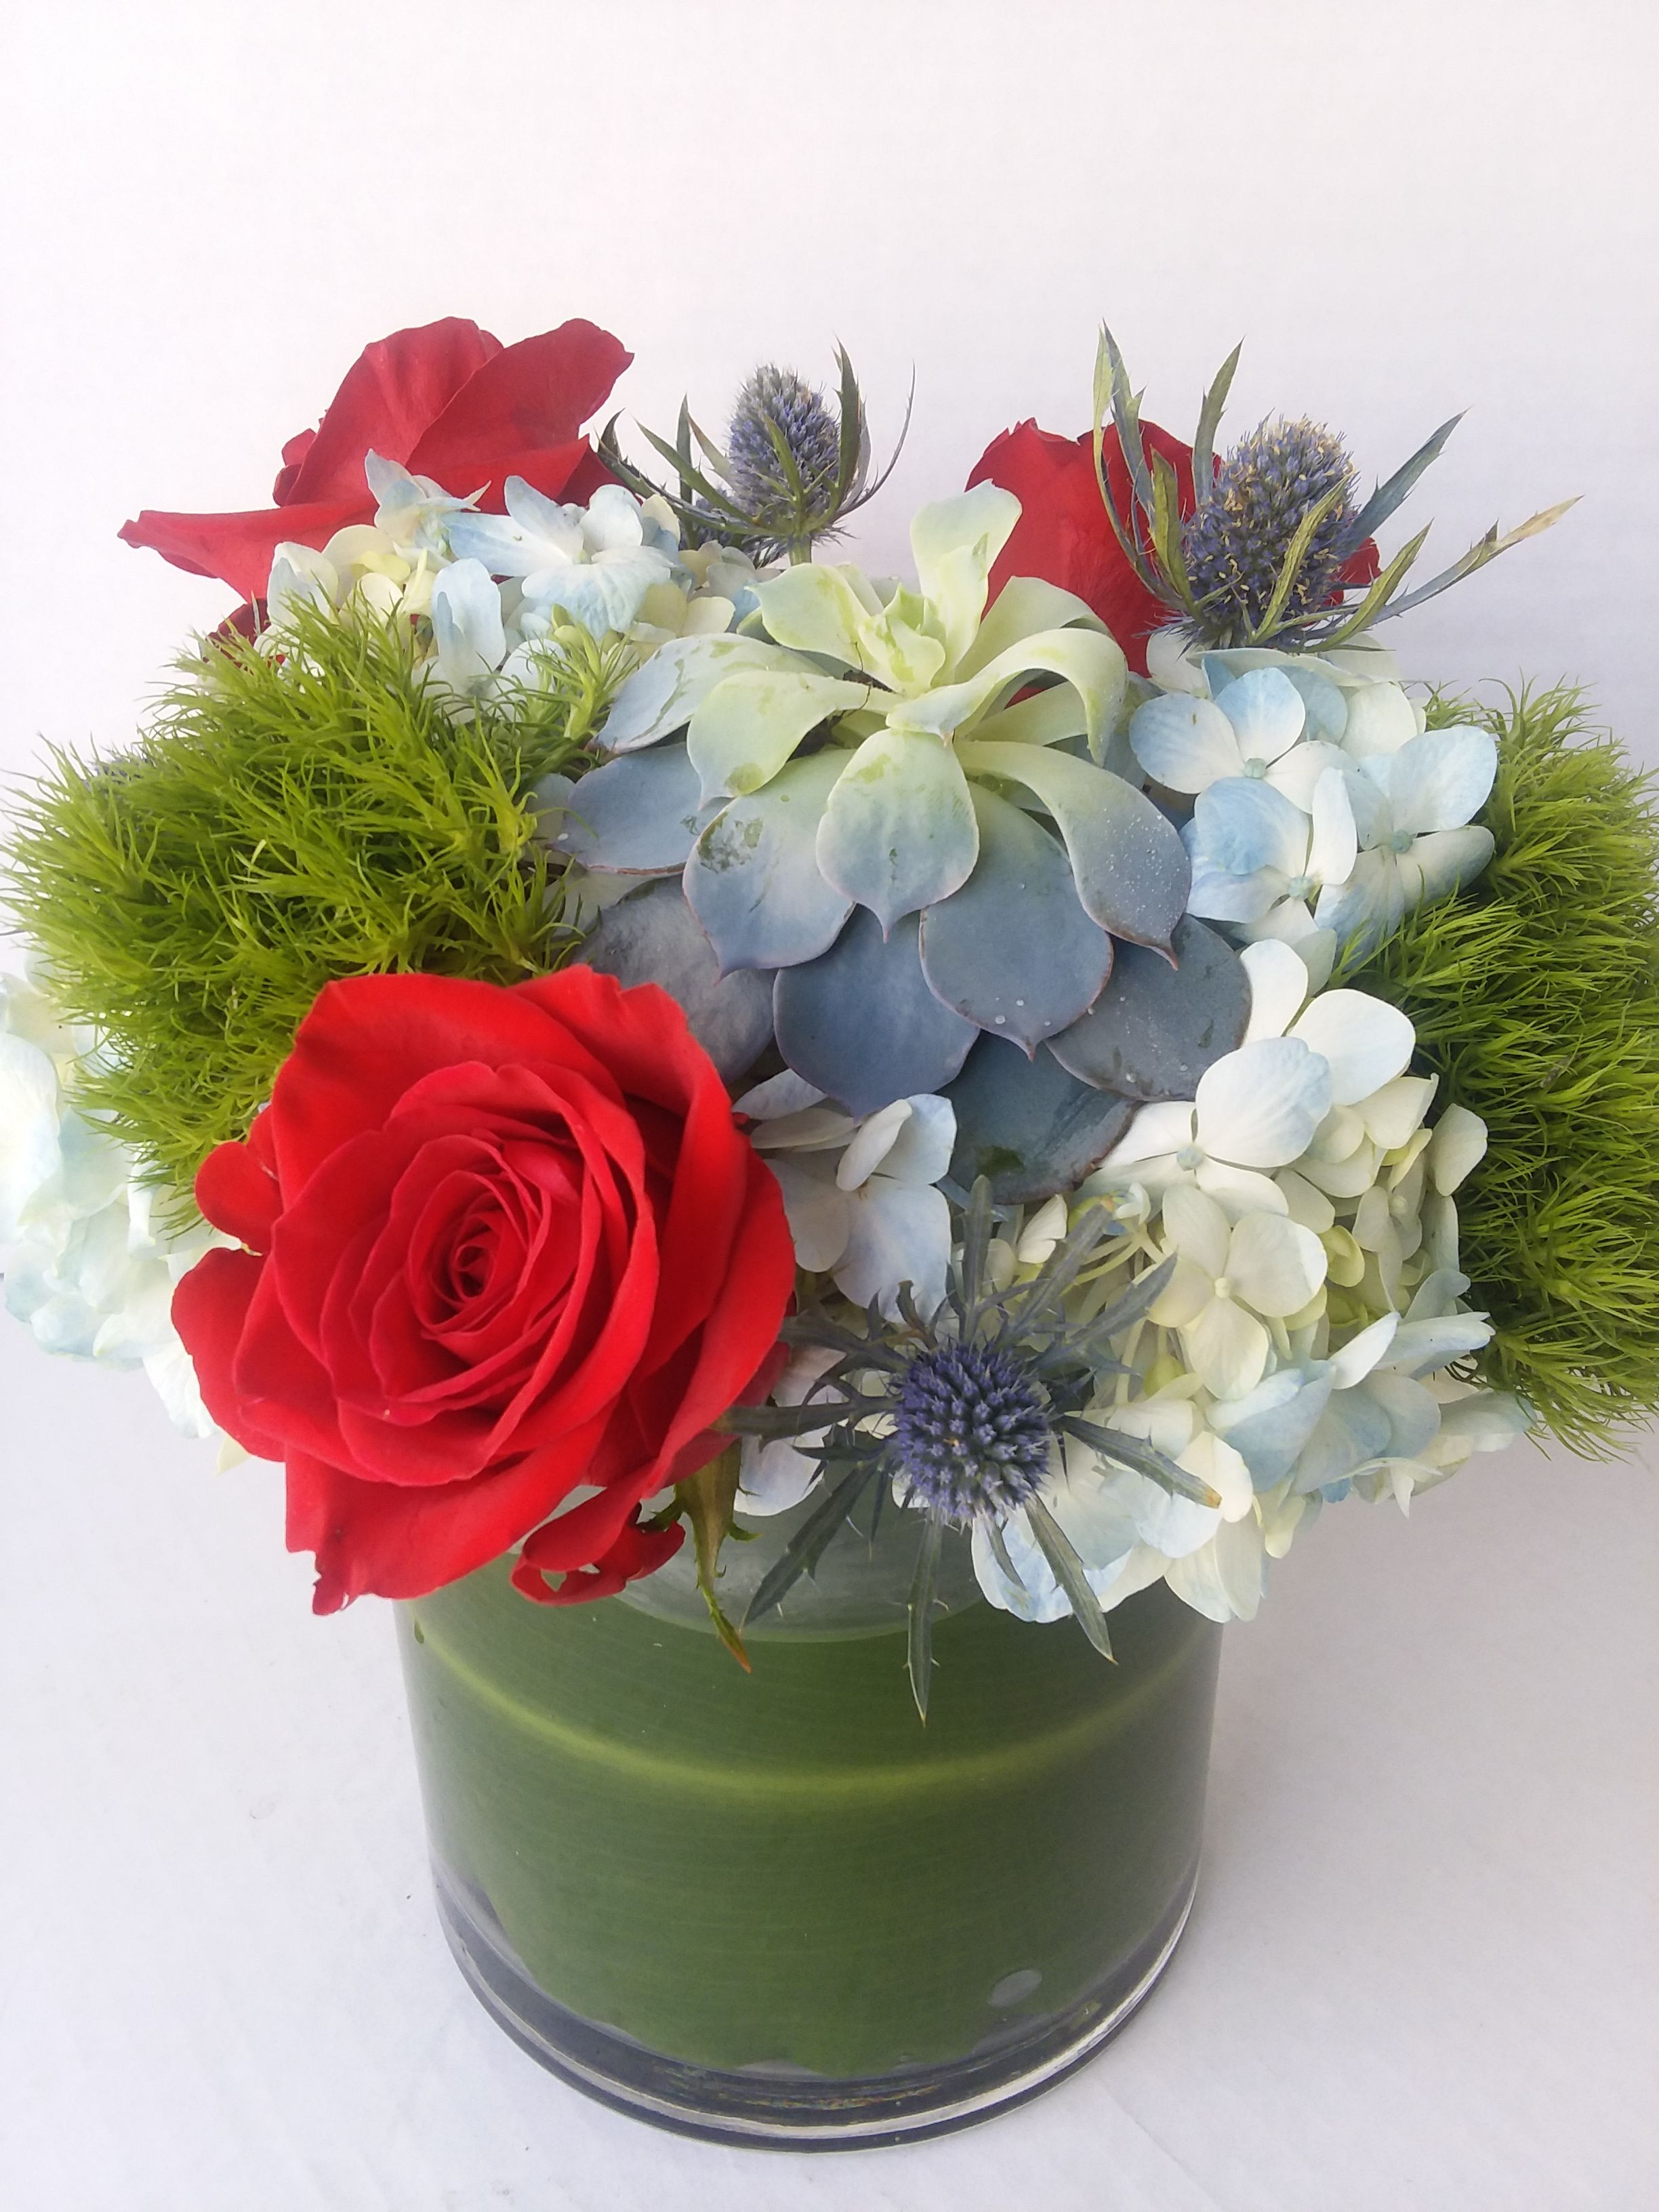 Contemporary compact design featuring roses hydrangea